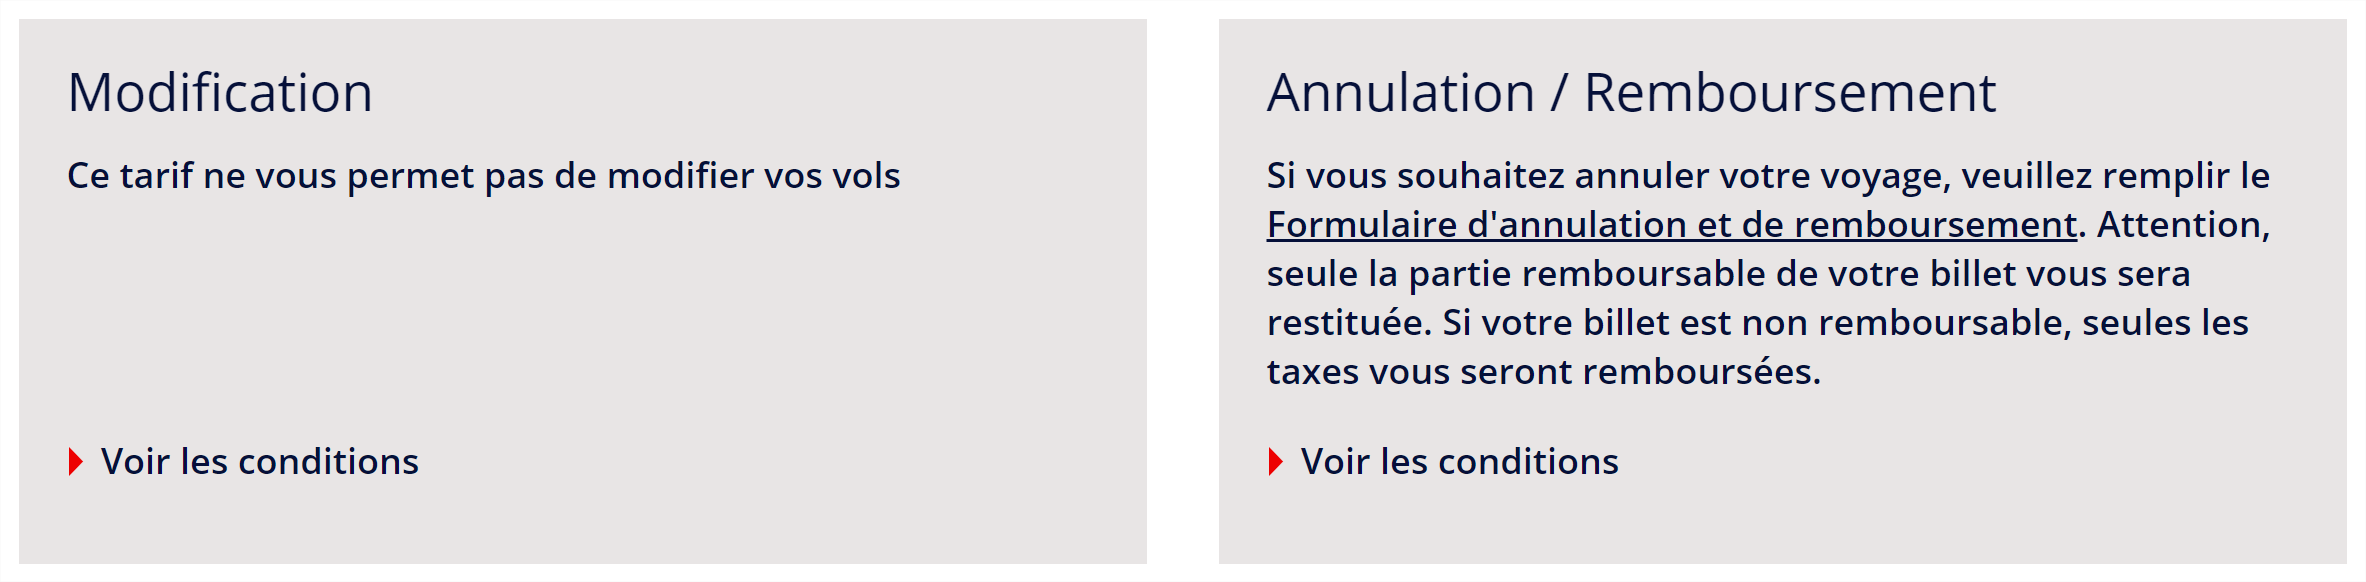 annulation modification air france